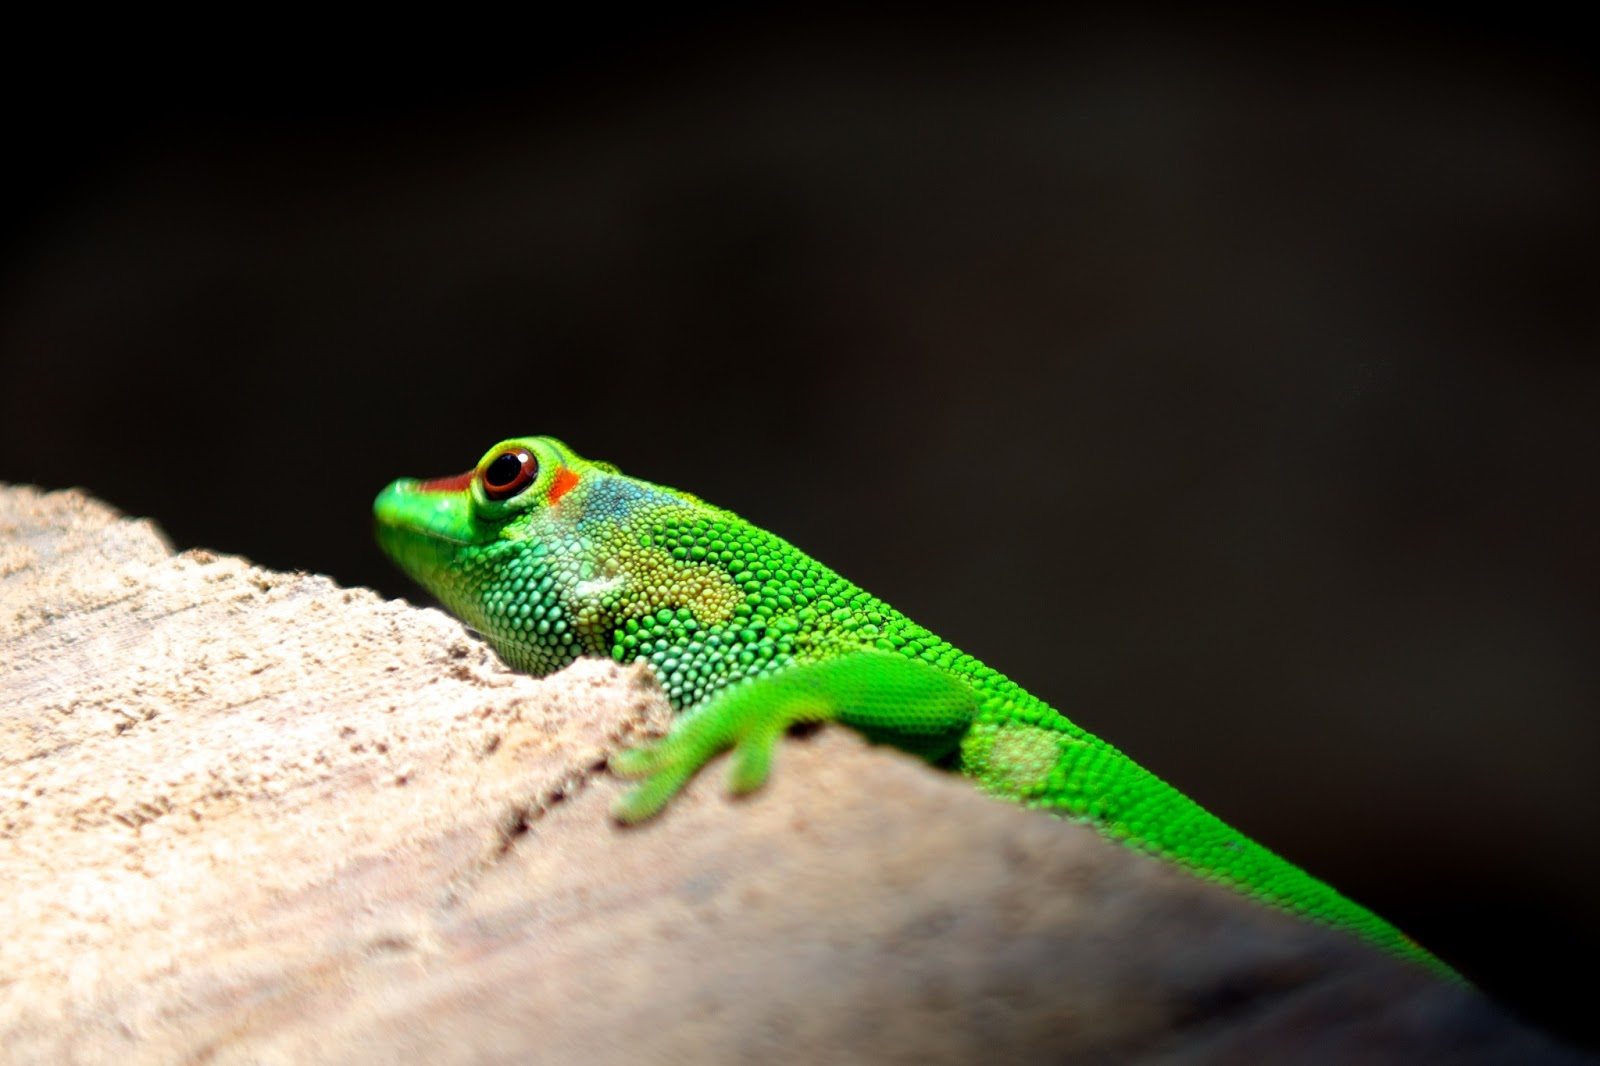 A green gecko resting on a piece of wood